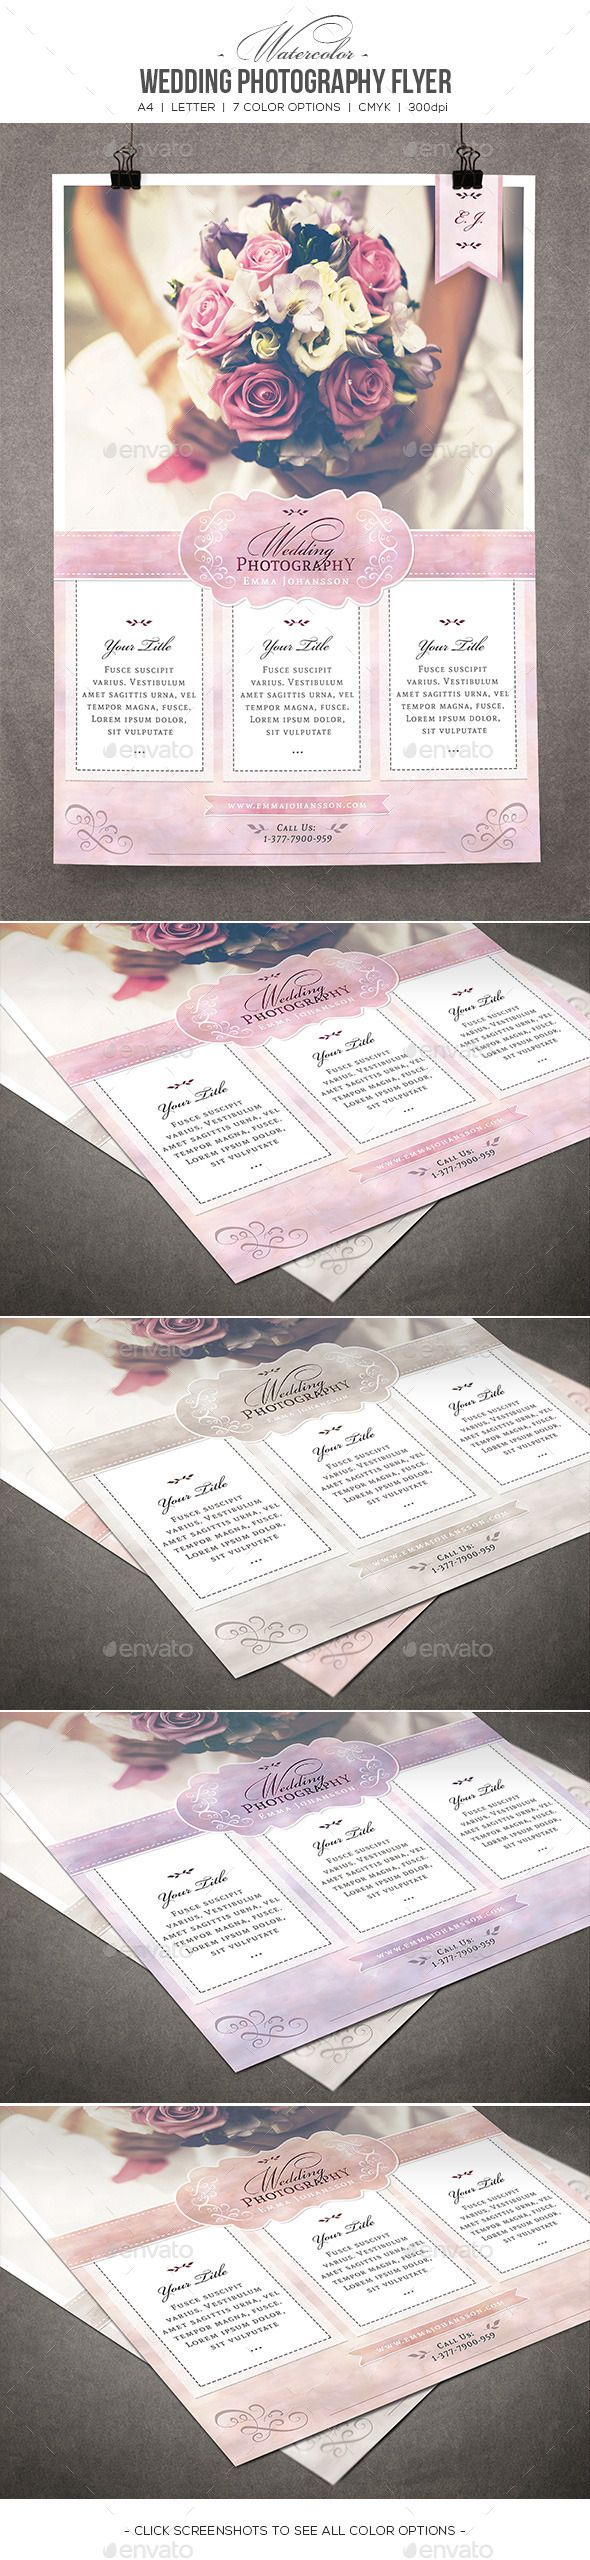 Watercolor Wedding Photography Flyer #psd #photoshop #8.5x11